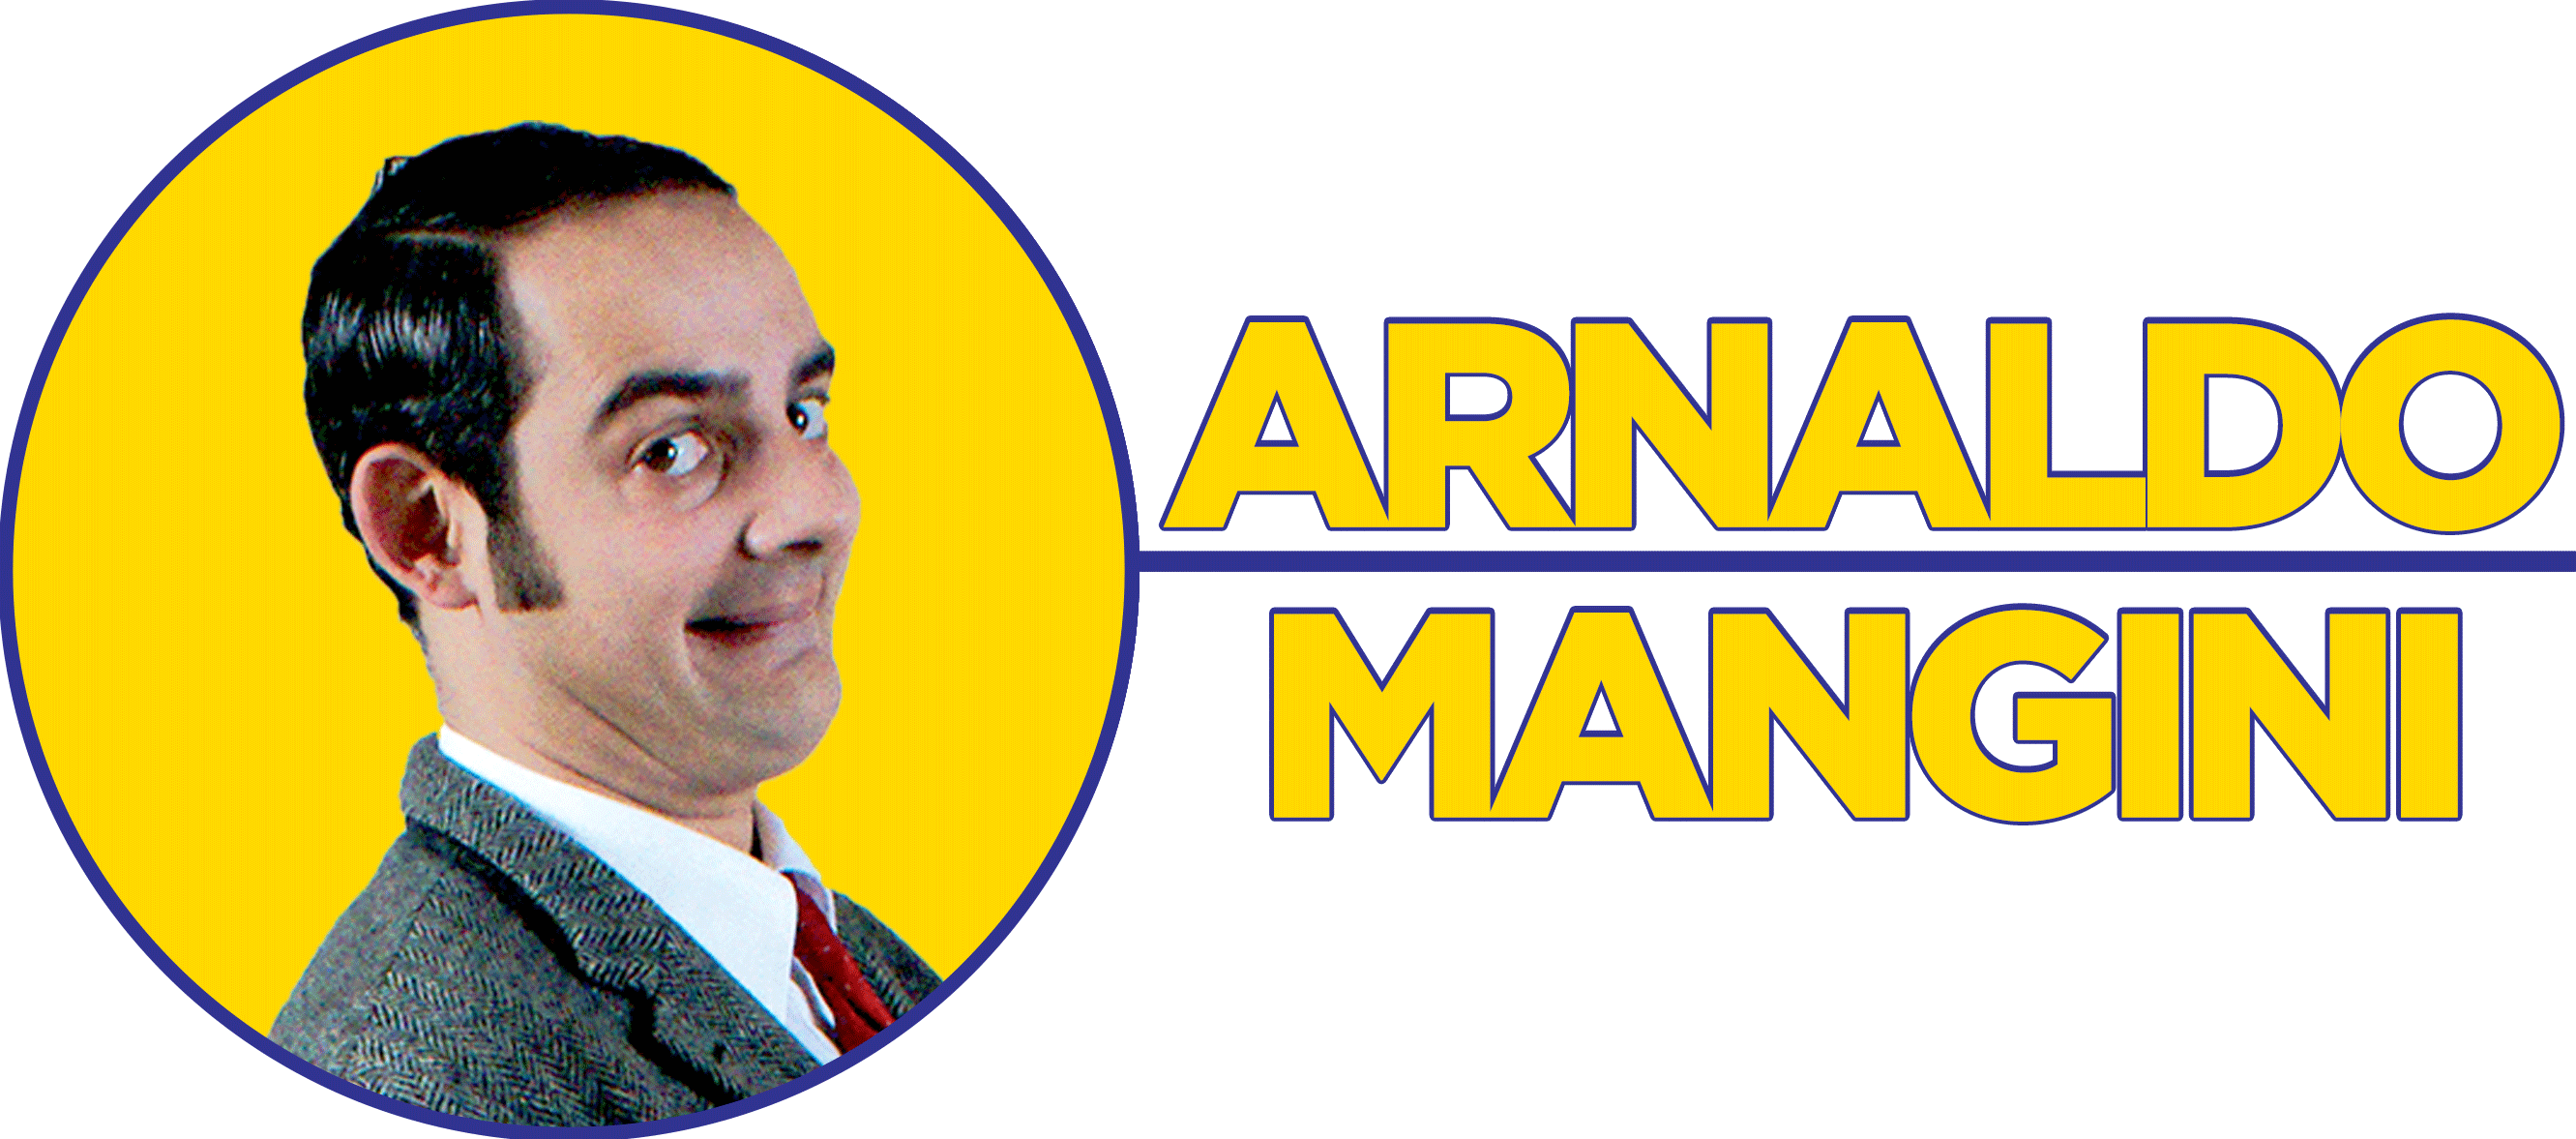 Smile Factor - Arnaldo Mangini Clown Actor / MrBean Lookalike